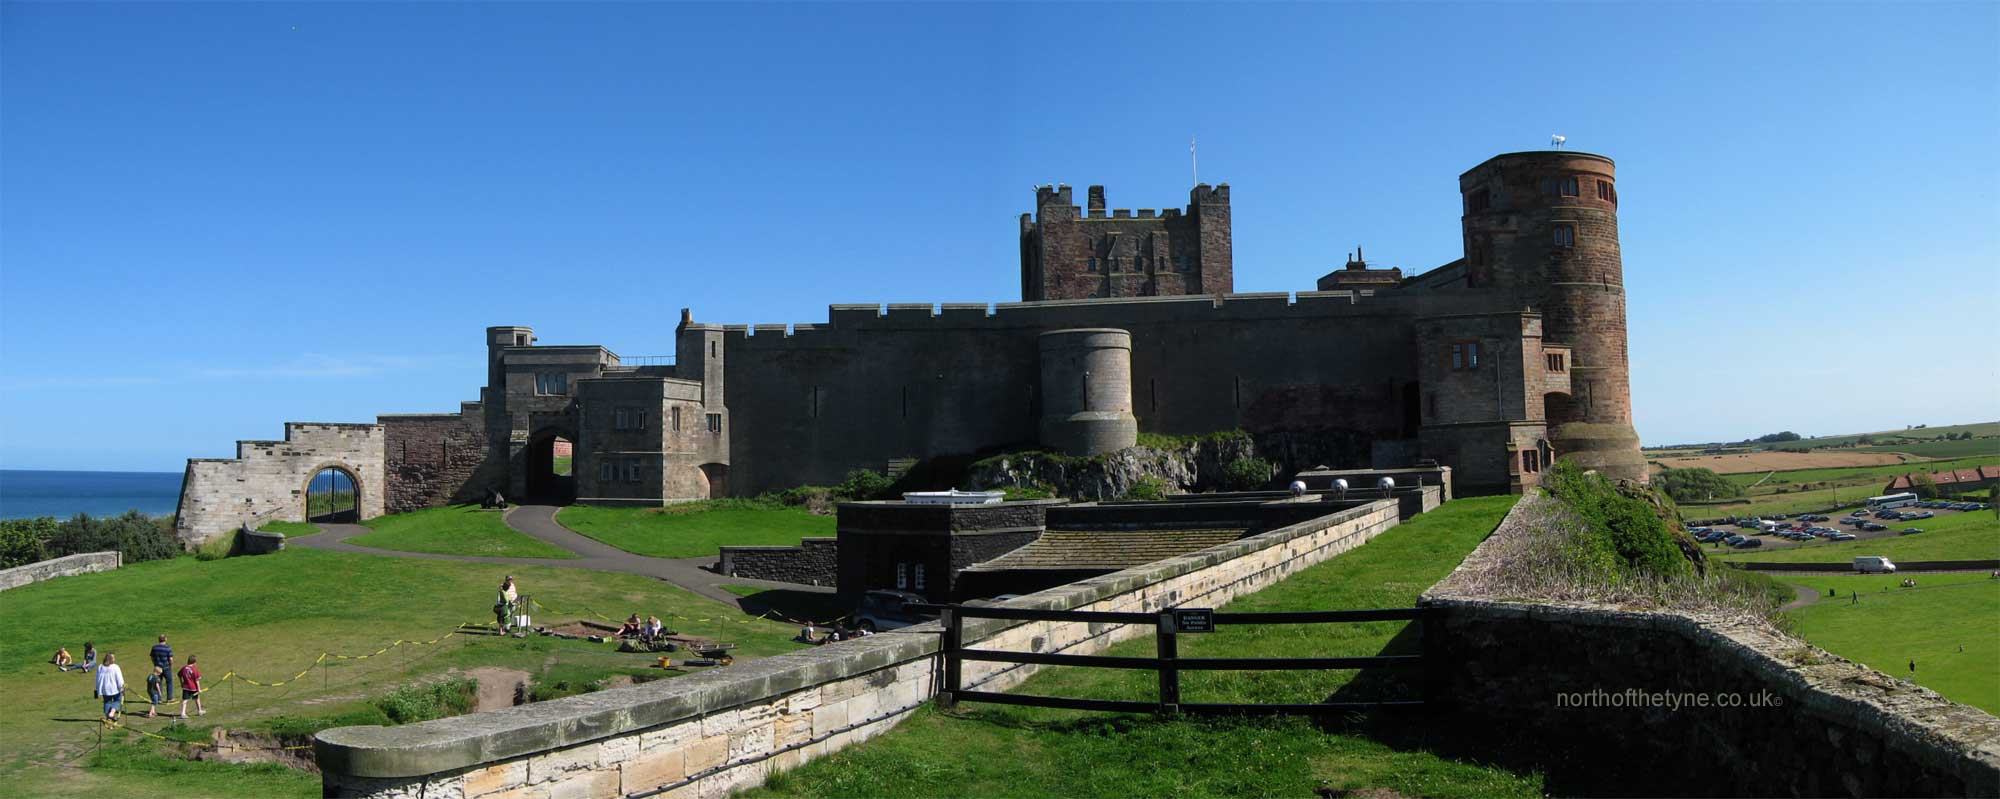 bamburgh castle - photo #42